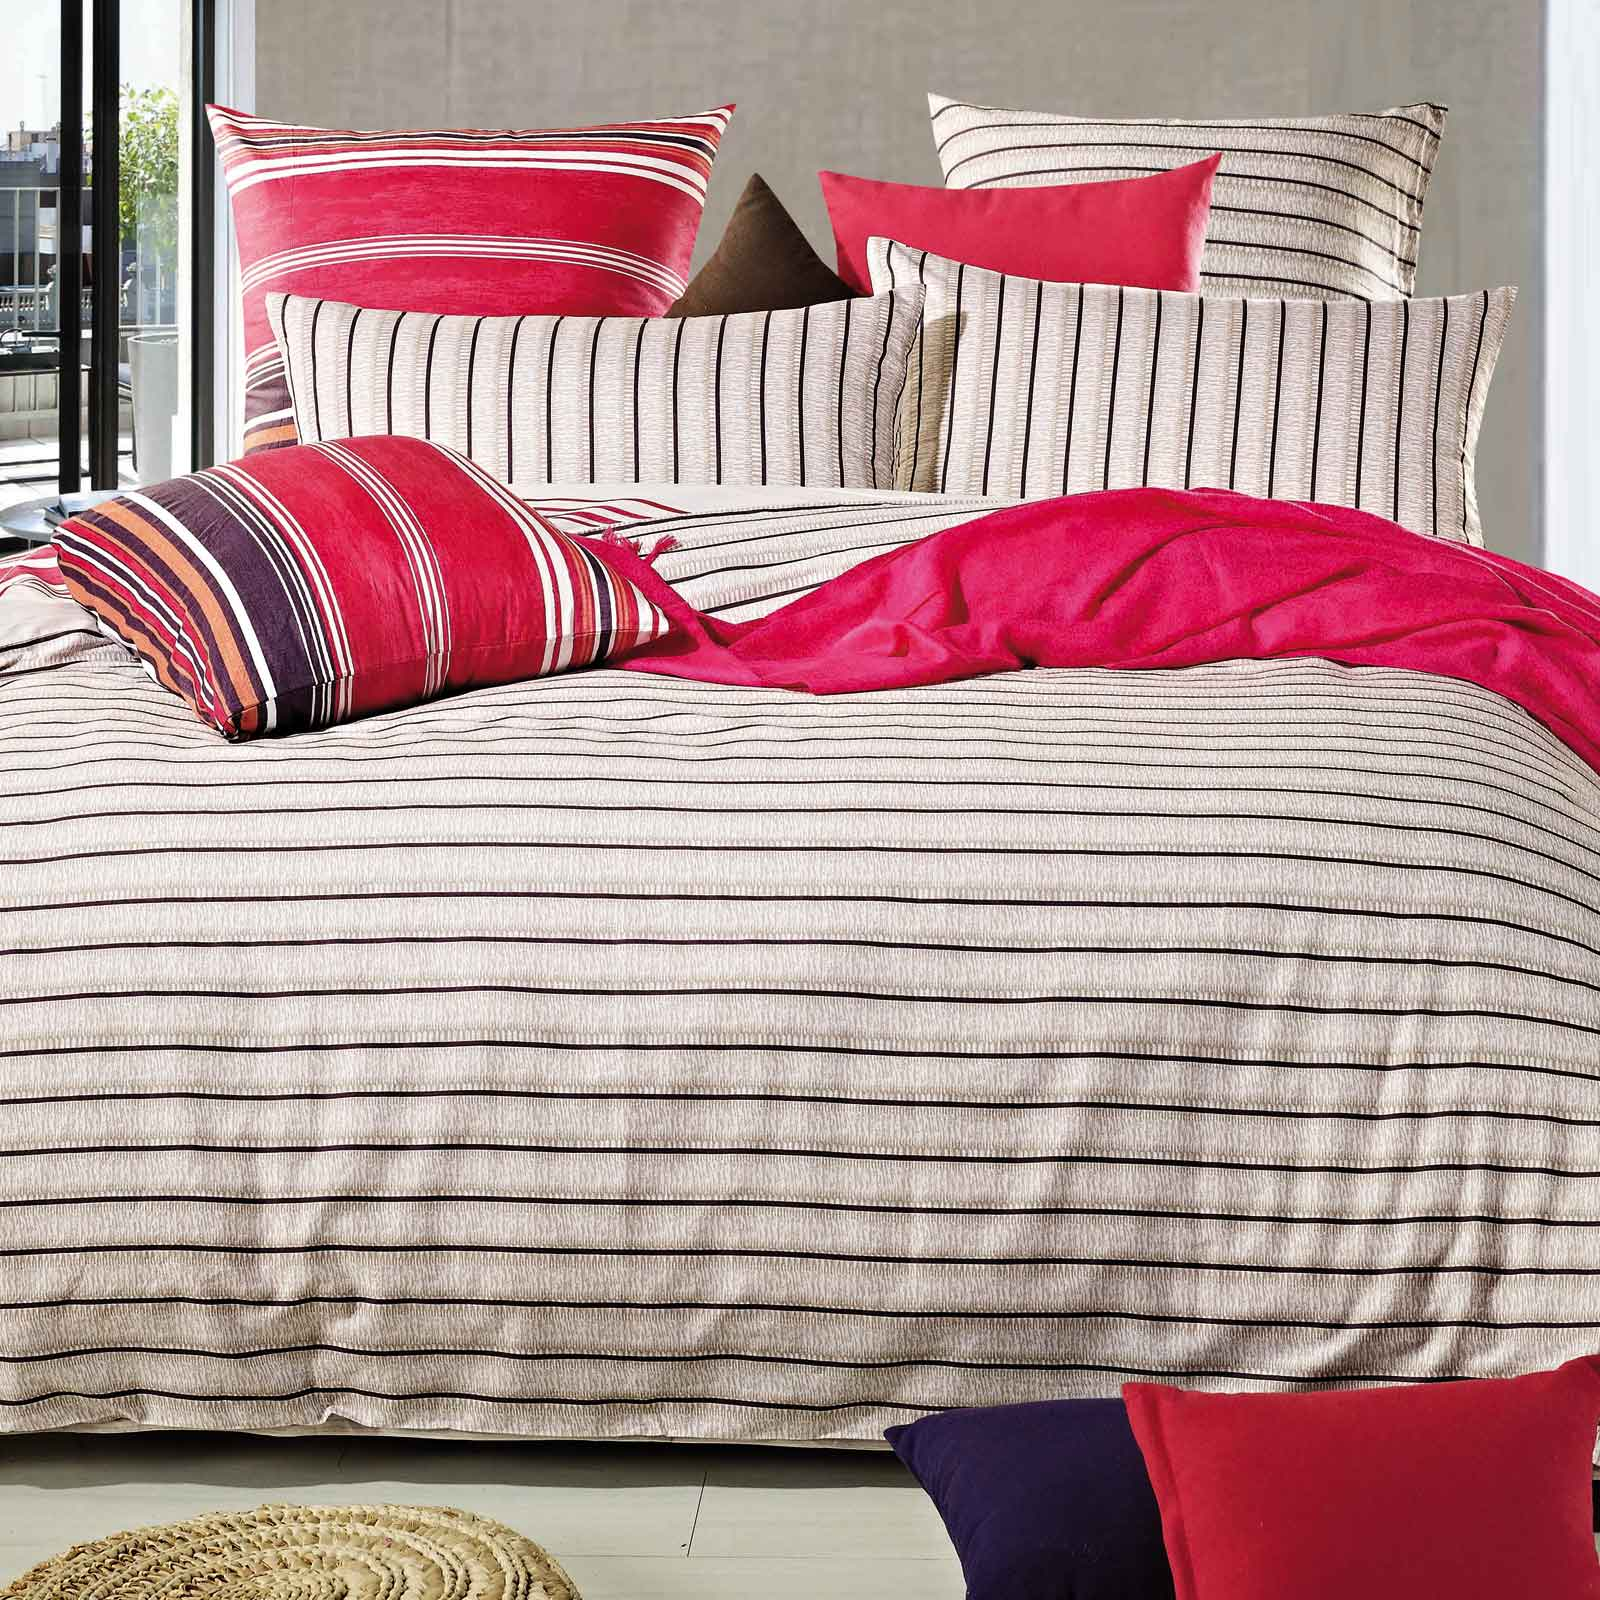 Amy-100-Cotton-King-Quilt-Cover-Set-Reversible-Bed-linen-bedding-set-L00021K